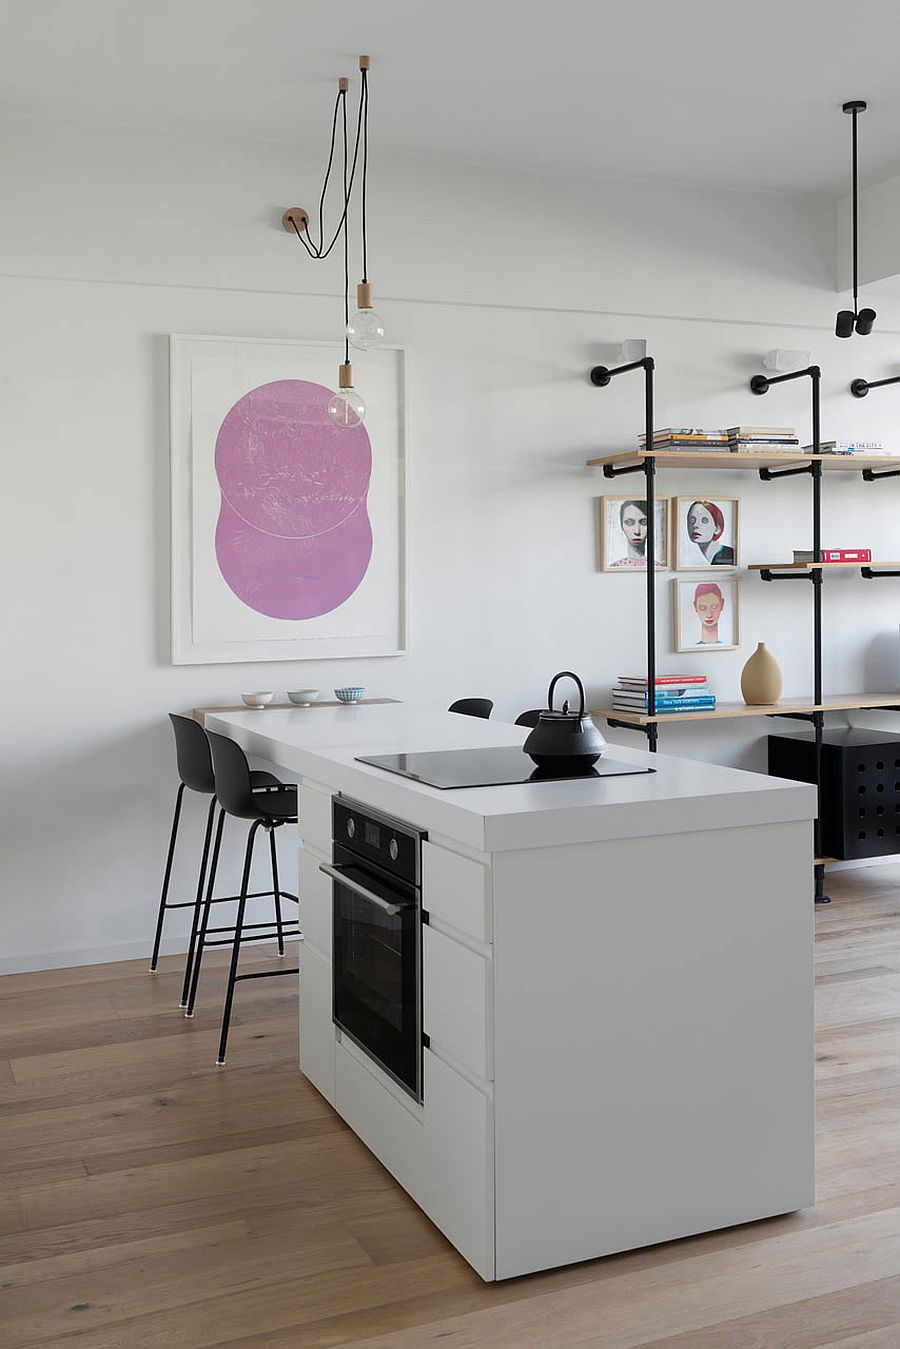 Casual-use-of-Edison-bulbs-above-the-kitchen-counter-lights-up-this-space